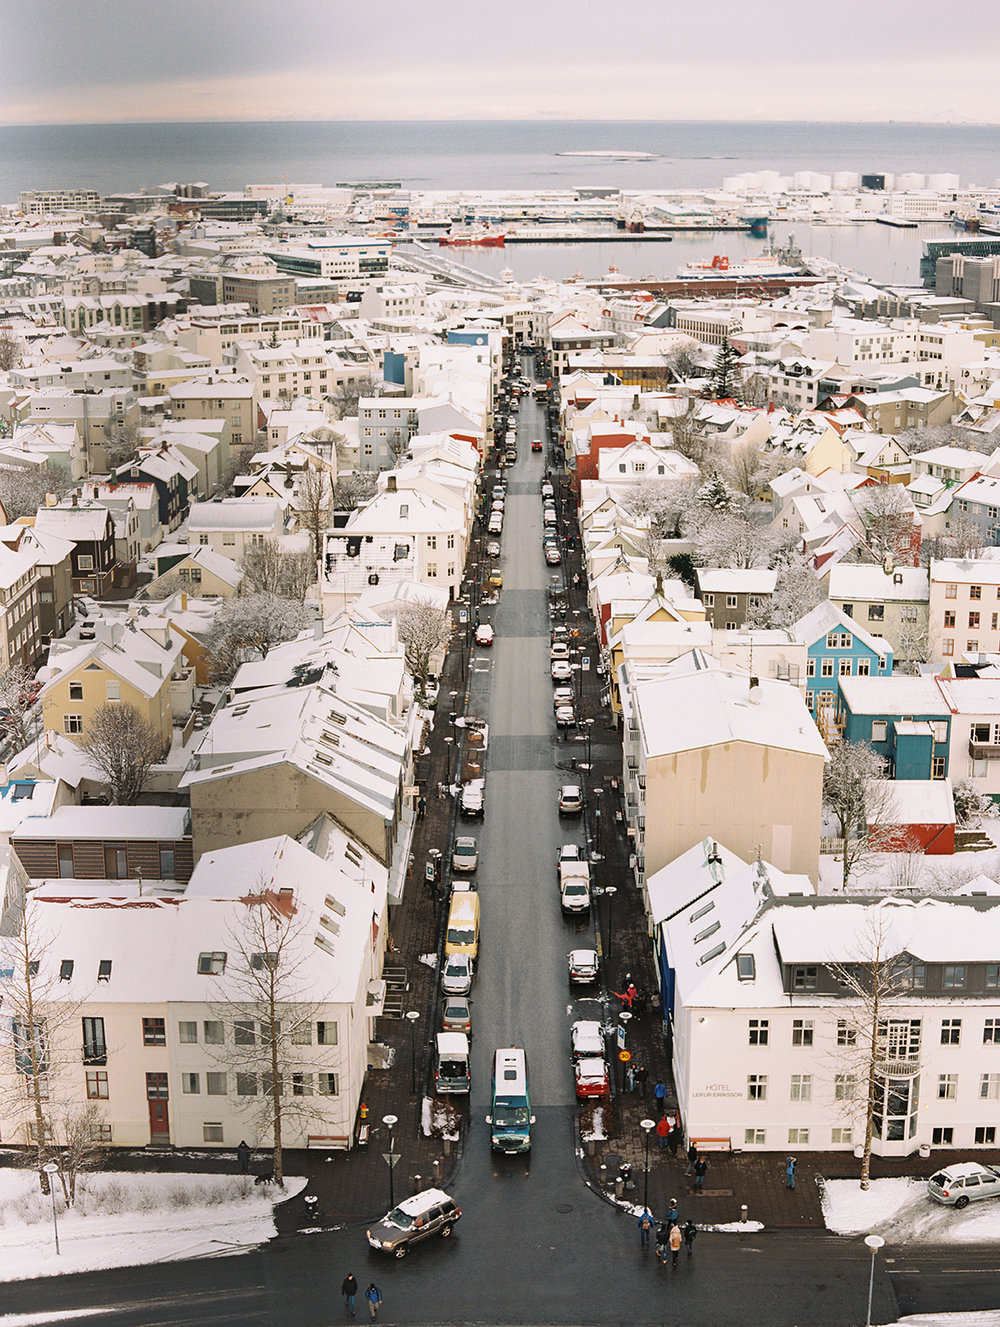 033fine-art-film-photographer-destination-wedding-iceland-brumley & wells.jpg